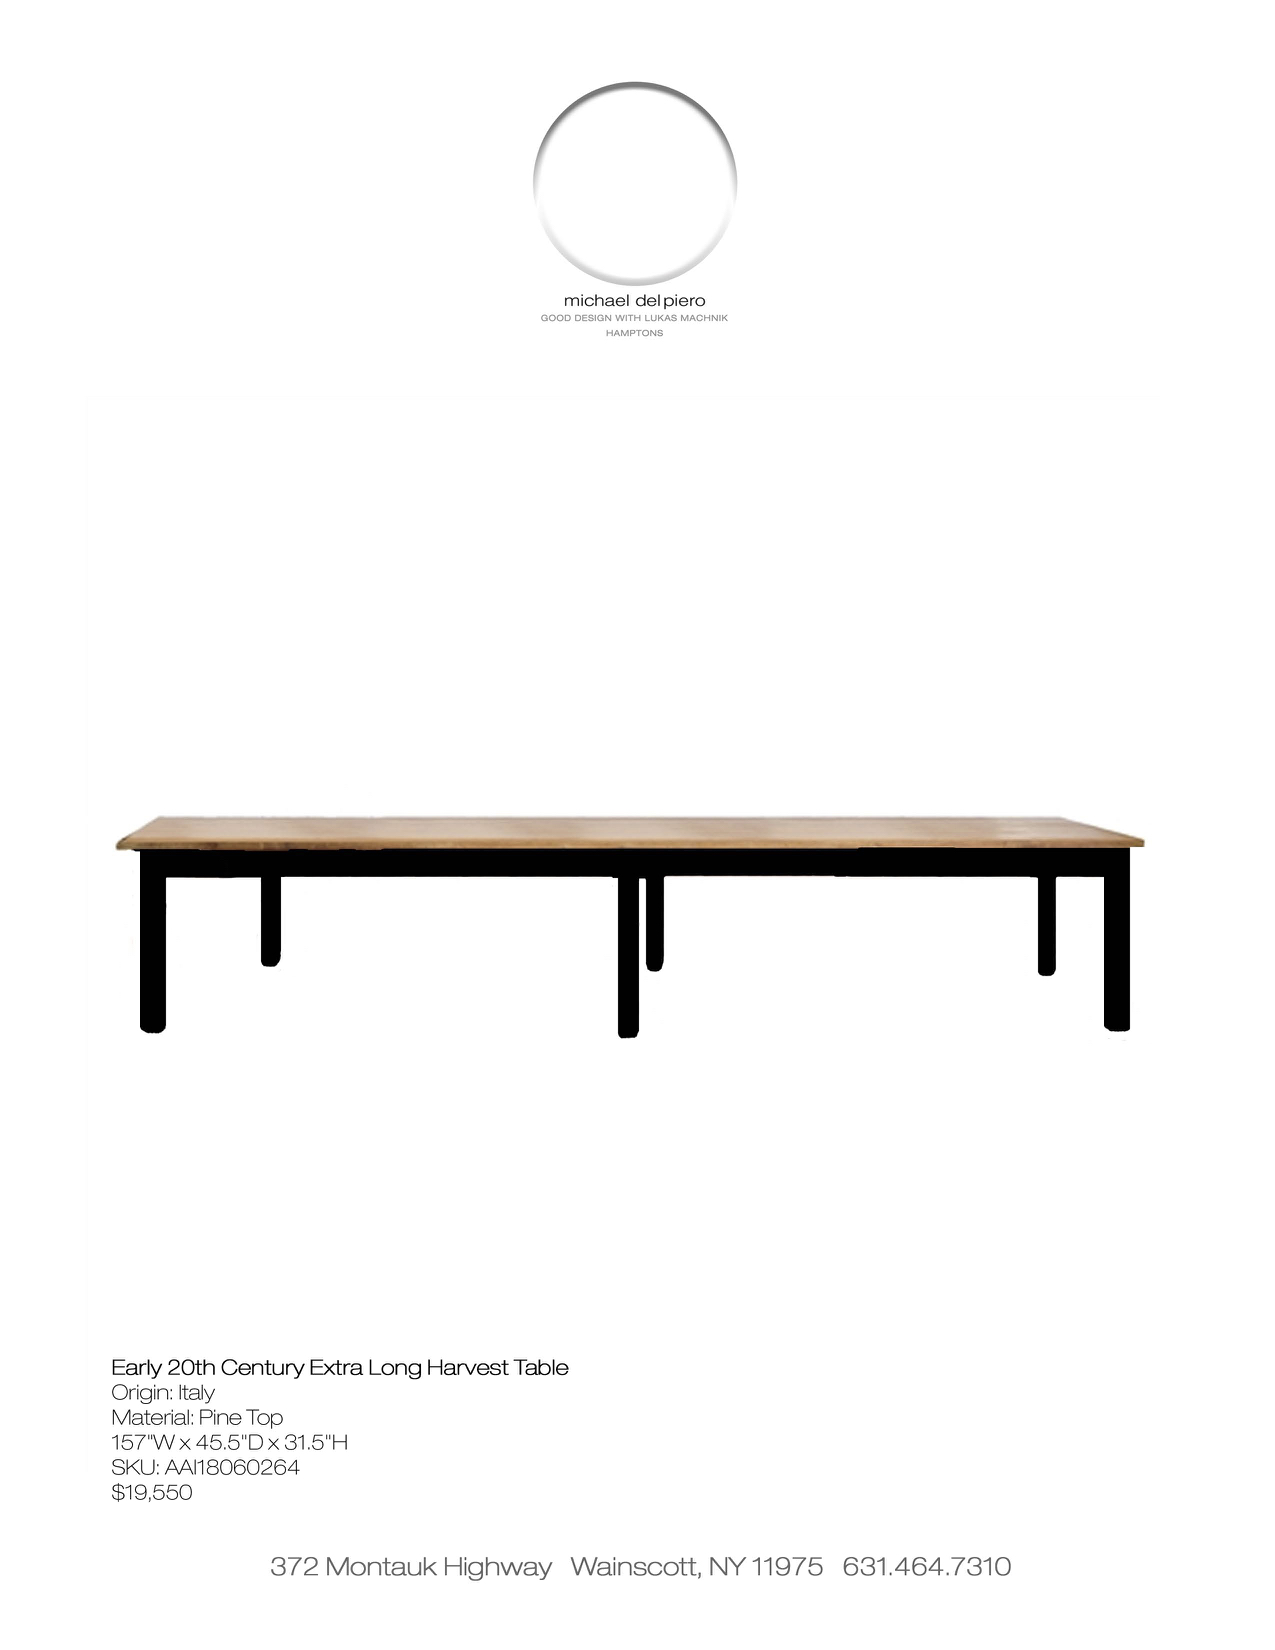 AAI18060264 Early 20th Century Extra Long Harvest Table (black).jpg